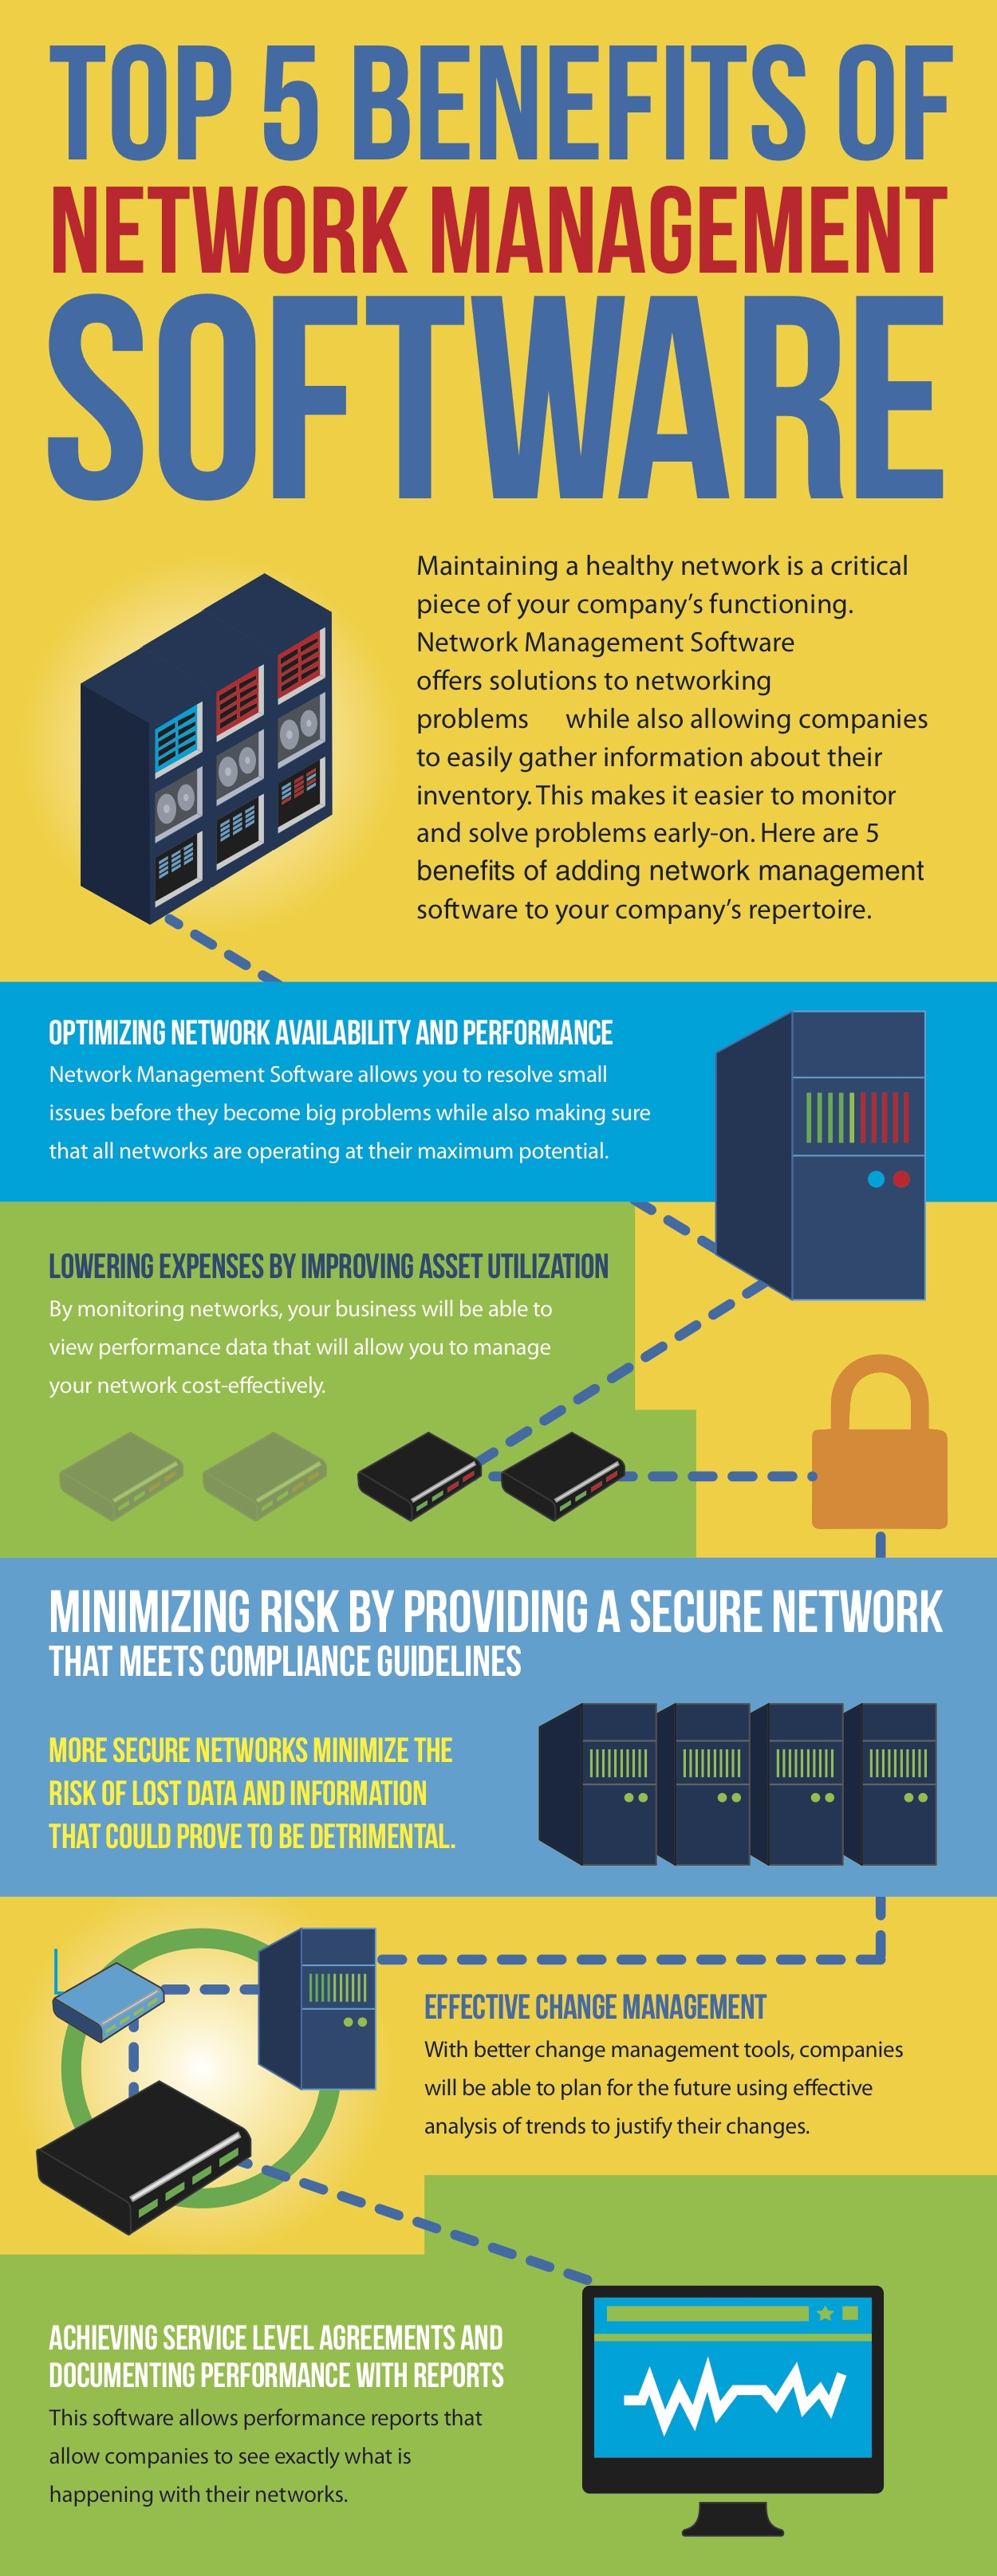 5 Benefits of Network Management Software-Infographic